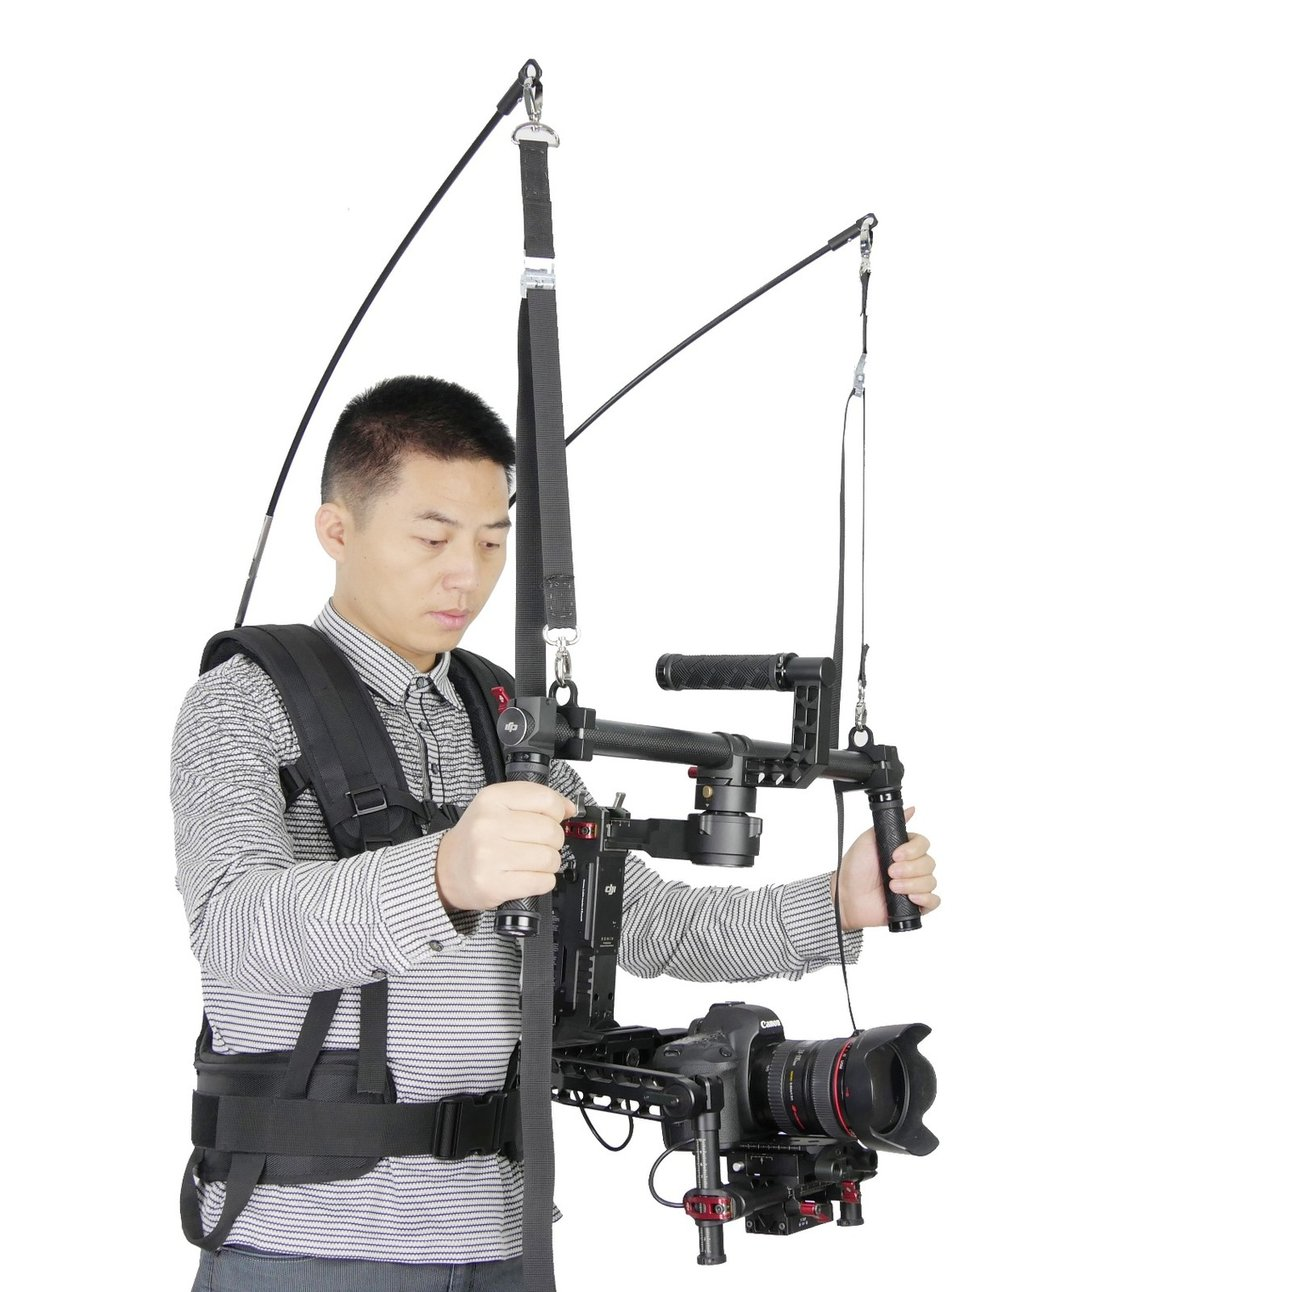 Laing V9 Waterproof Stabilizer Vest 2-6kg Loading Capacity with Climbing Carabiner for DJI Ronin 3 Axis Gimble Stabilizer Assist laing h5 mini carbon fiber handheld stabilizer with 6 17lb 2 8kg loading capacity for dslr cameras with bag and arm brace wrist